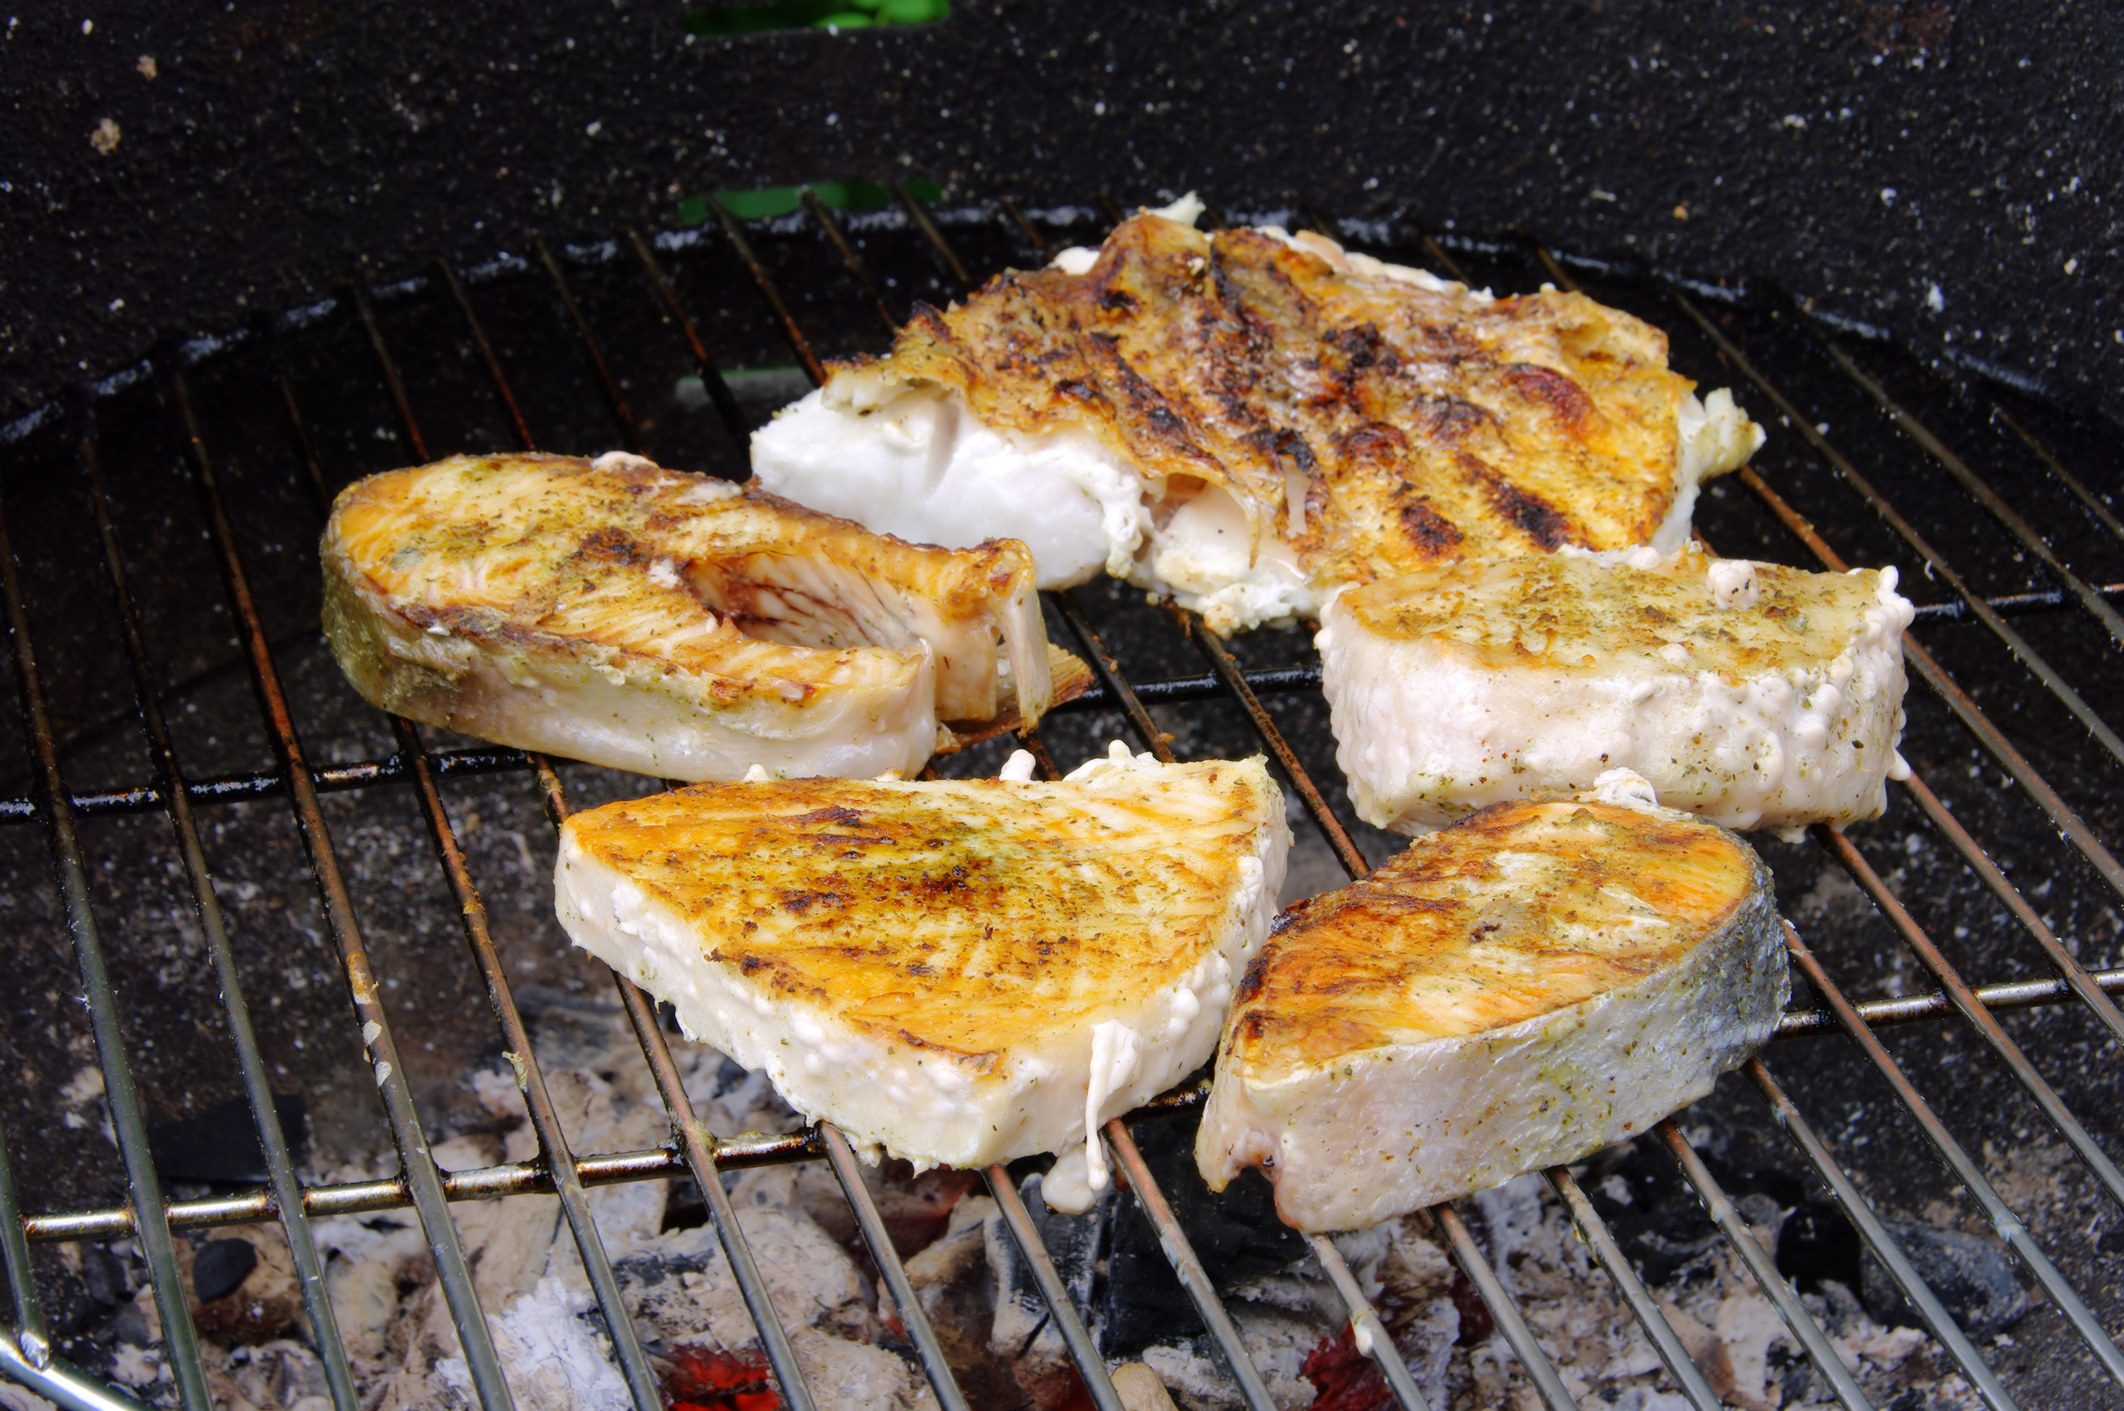 Salmon steaks cooking on a grill.